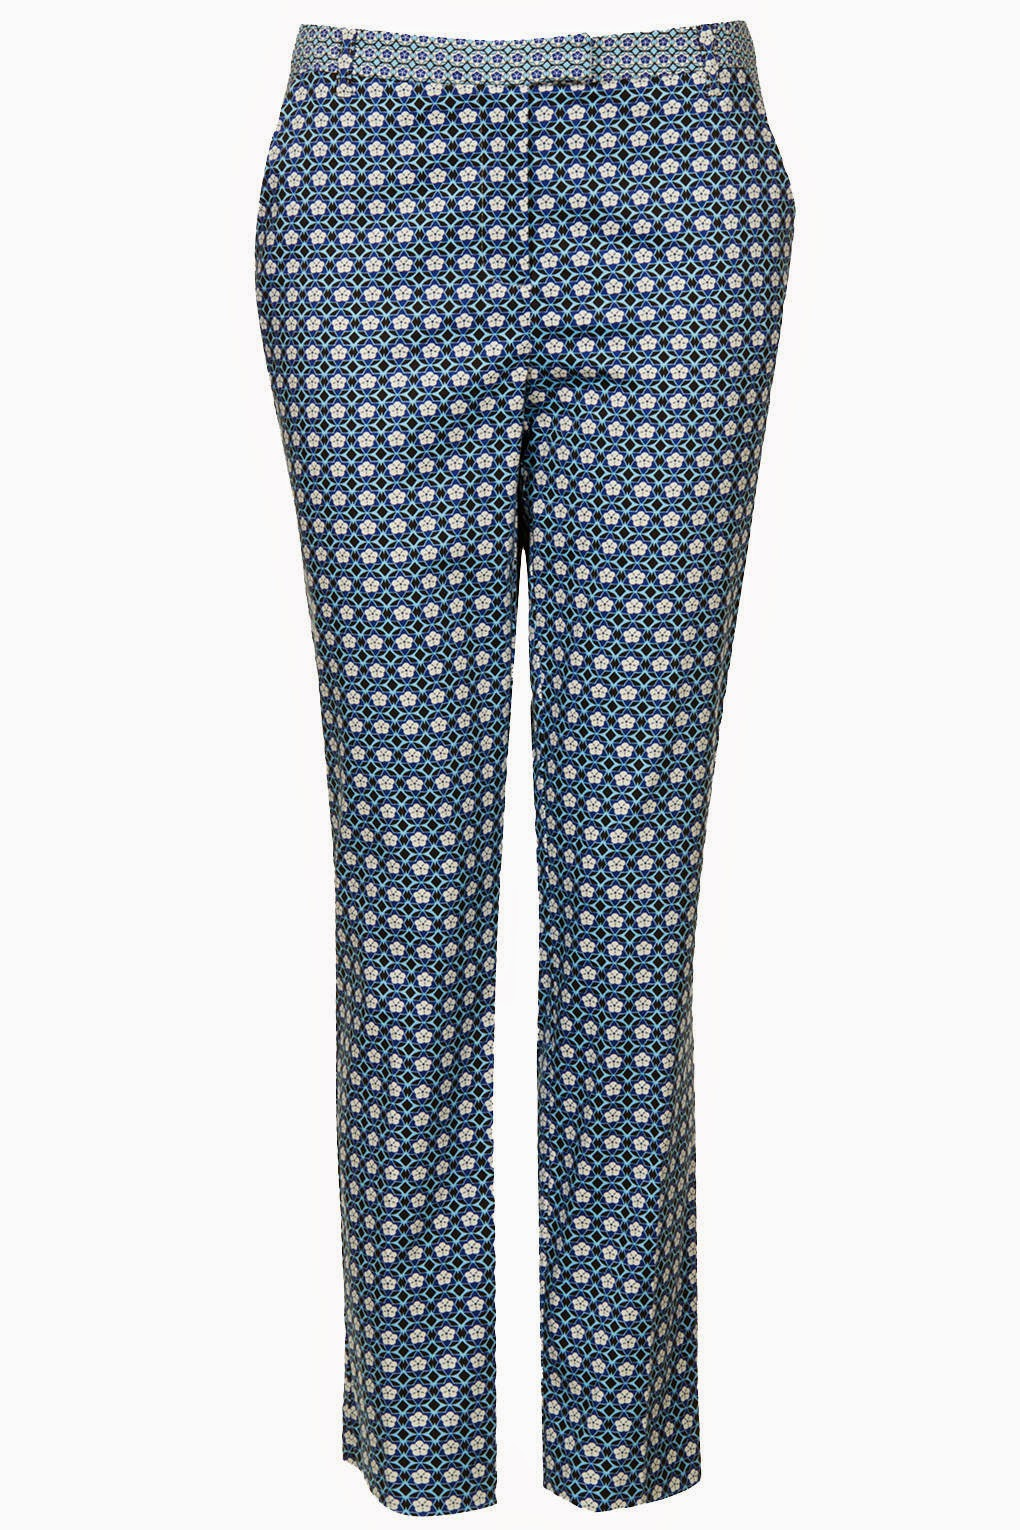 topshop printed trousers